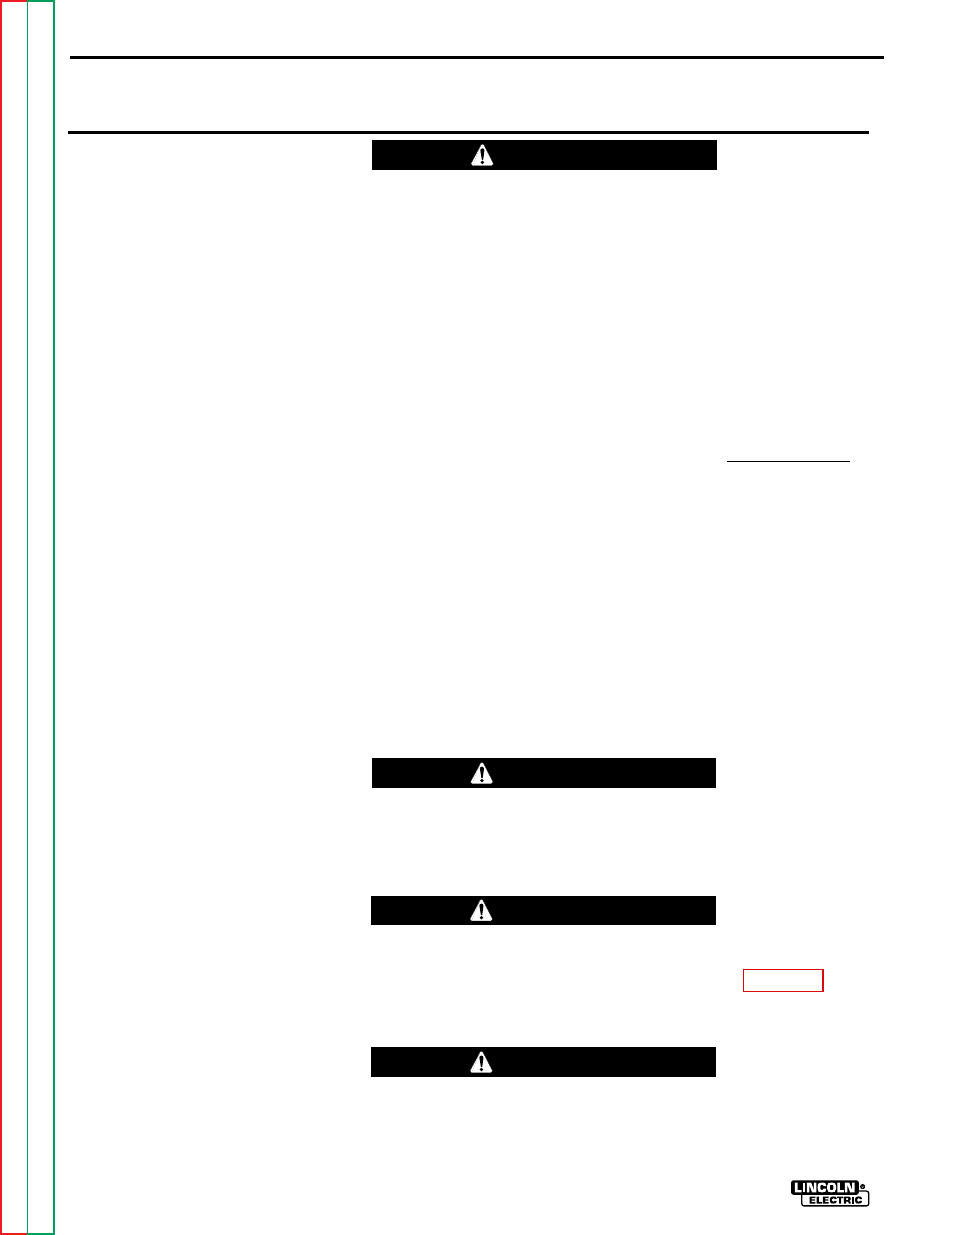 Troubleshooting Repair How To Use Guide Caution Lincoln Electric Welder Wiring Diagram Square Wave Tig 255 Svm100 A User Manual Page 42 100